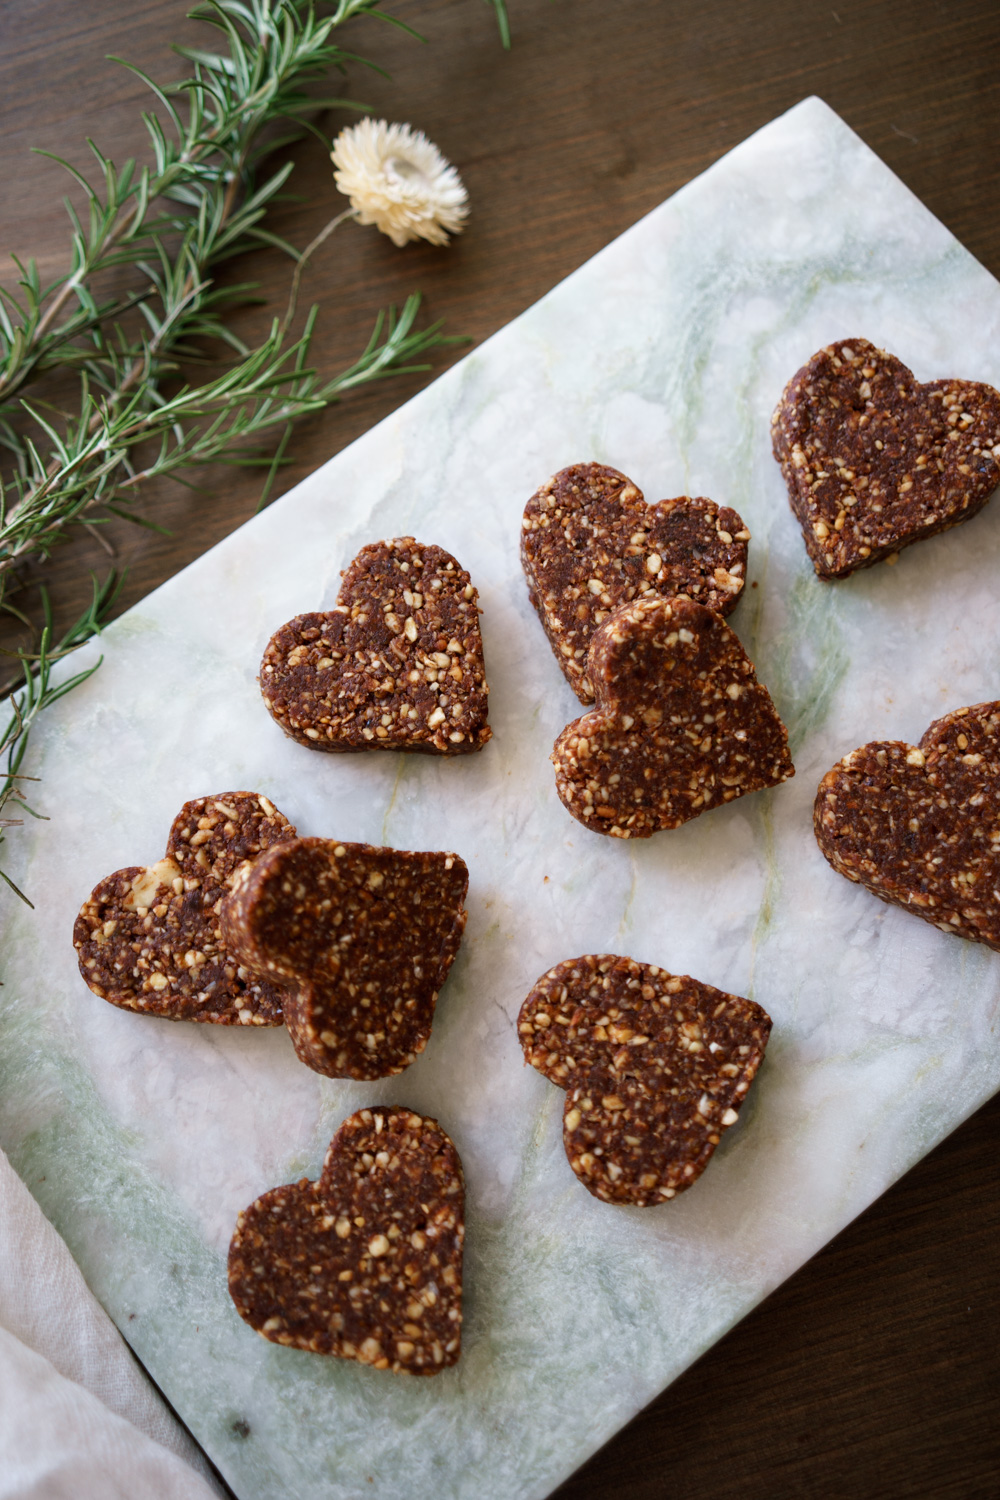 Cashew and Almond Energy Bars